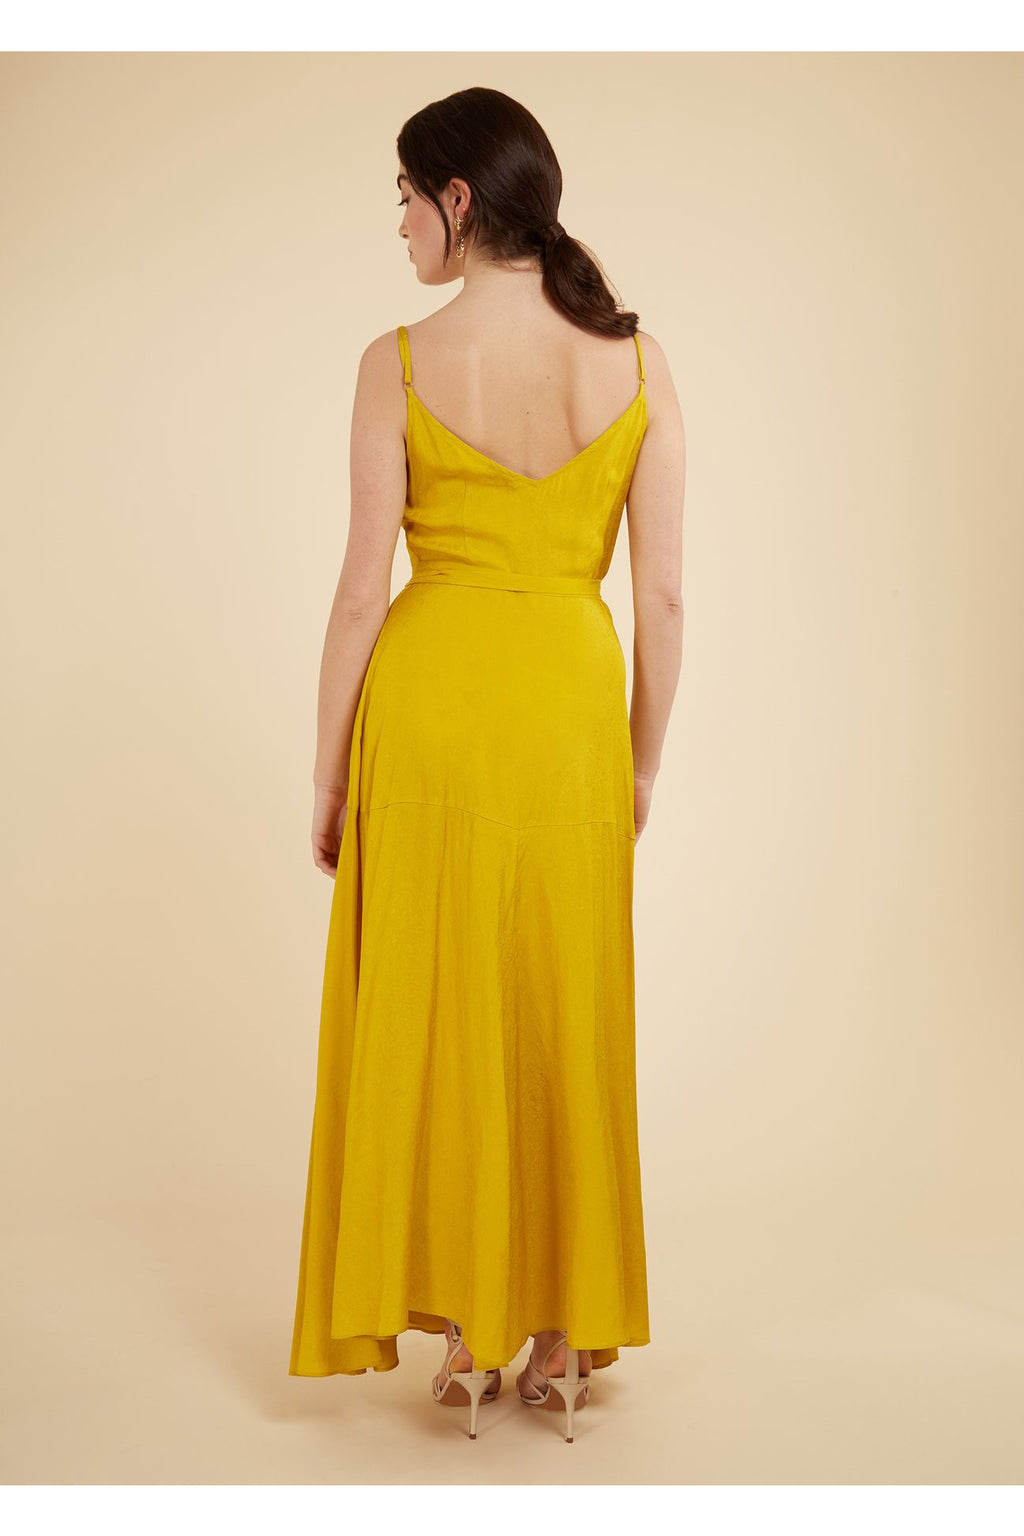 Alika Yellow Dress